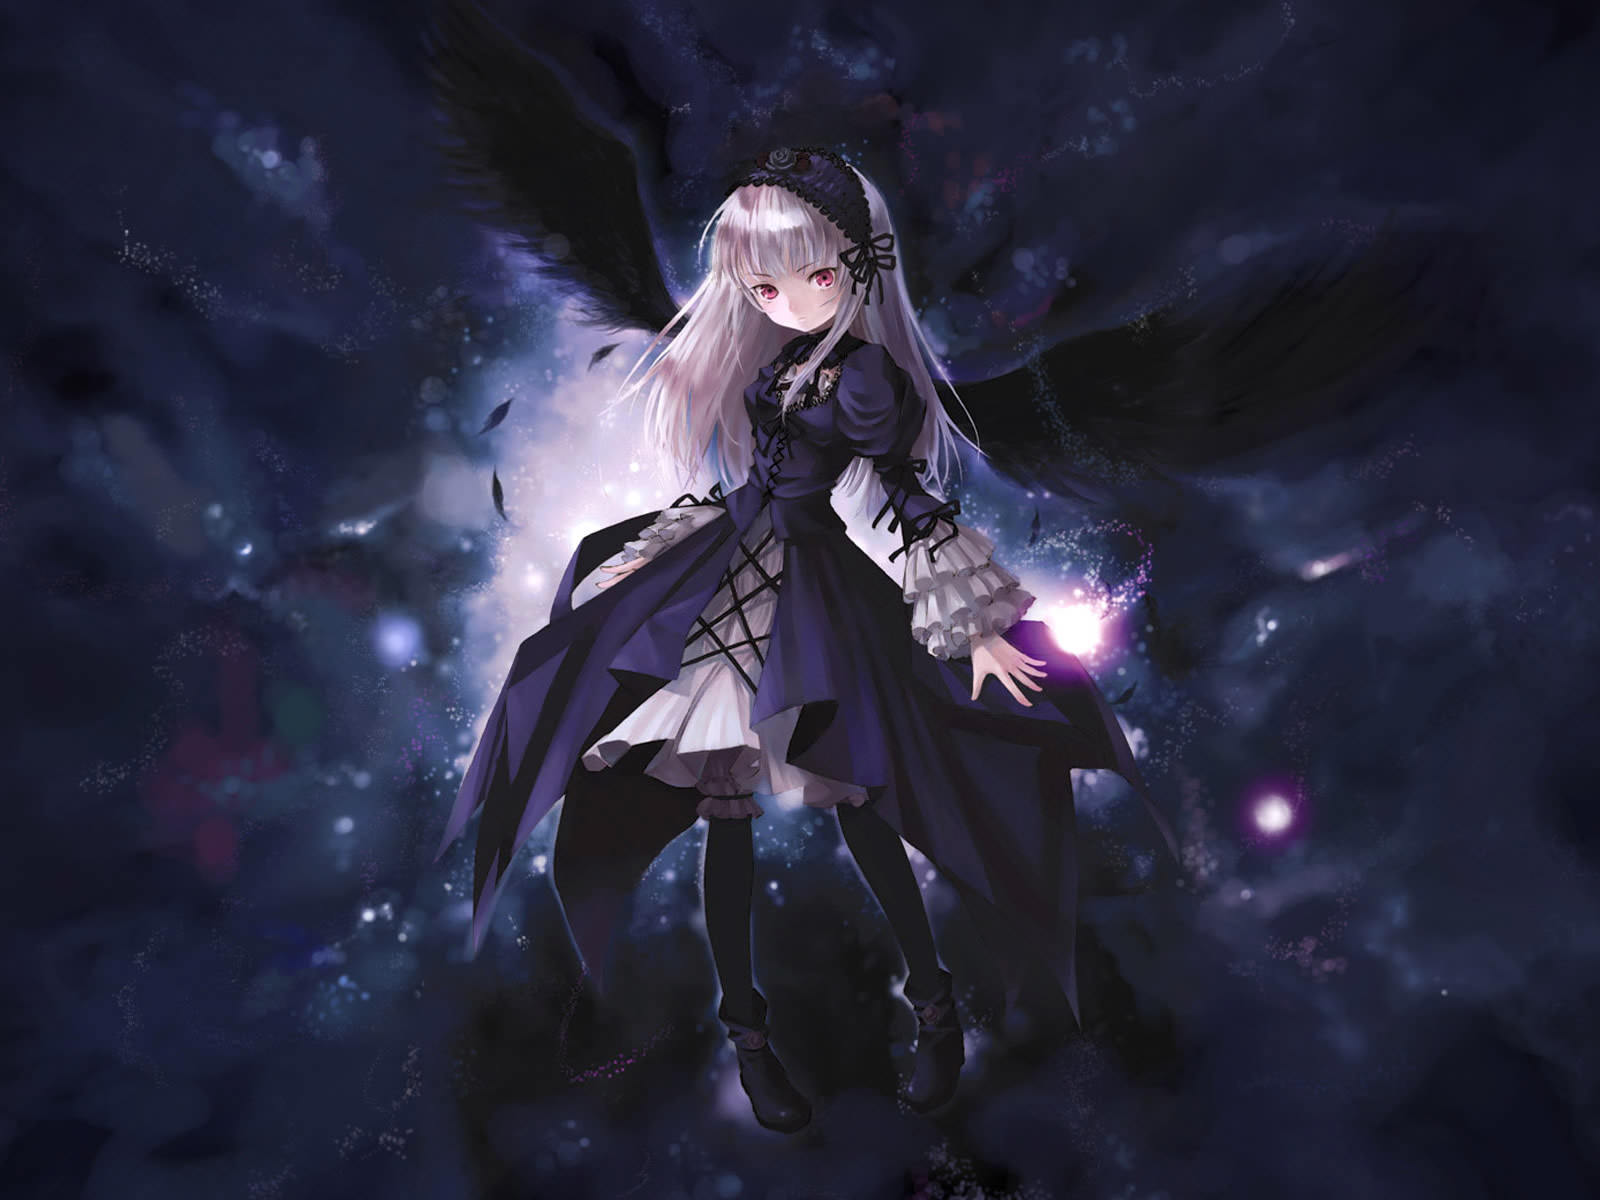 60 beautiful anime manga wallpapers hongkiat - Dark anime background ...